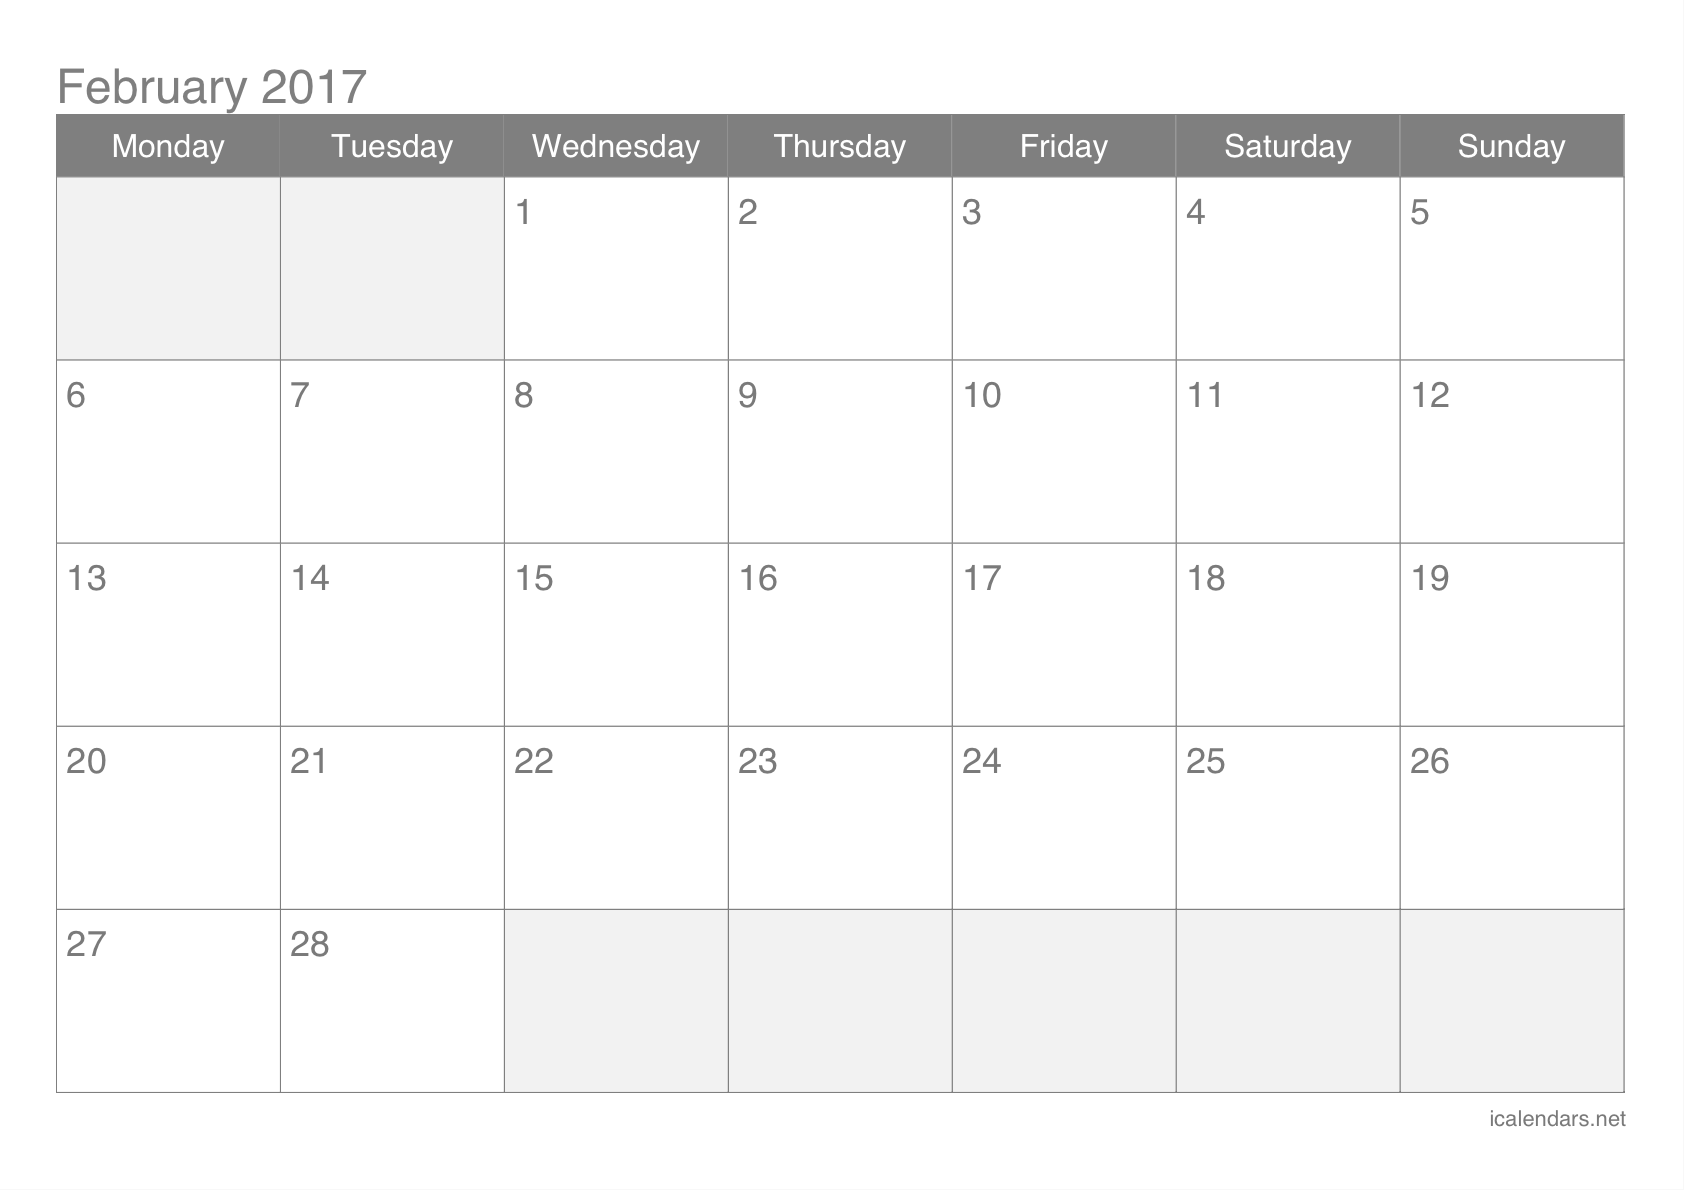 February 2017 Printable Calendar Icalendars Net